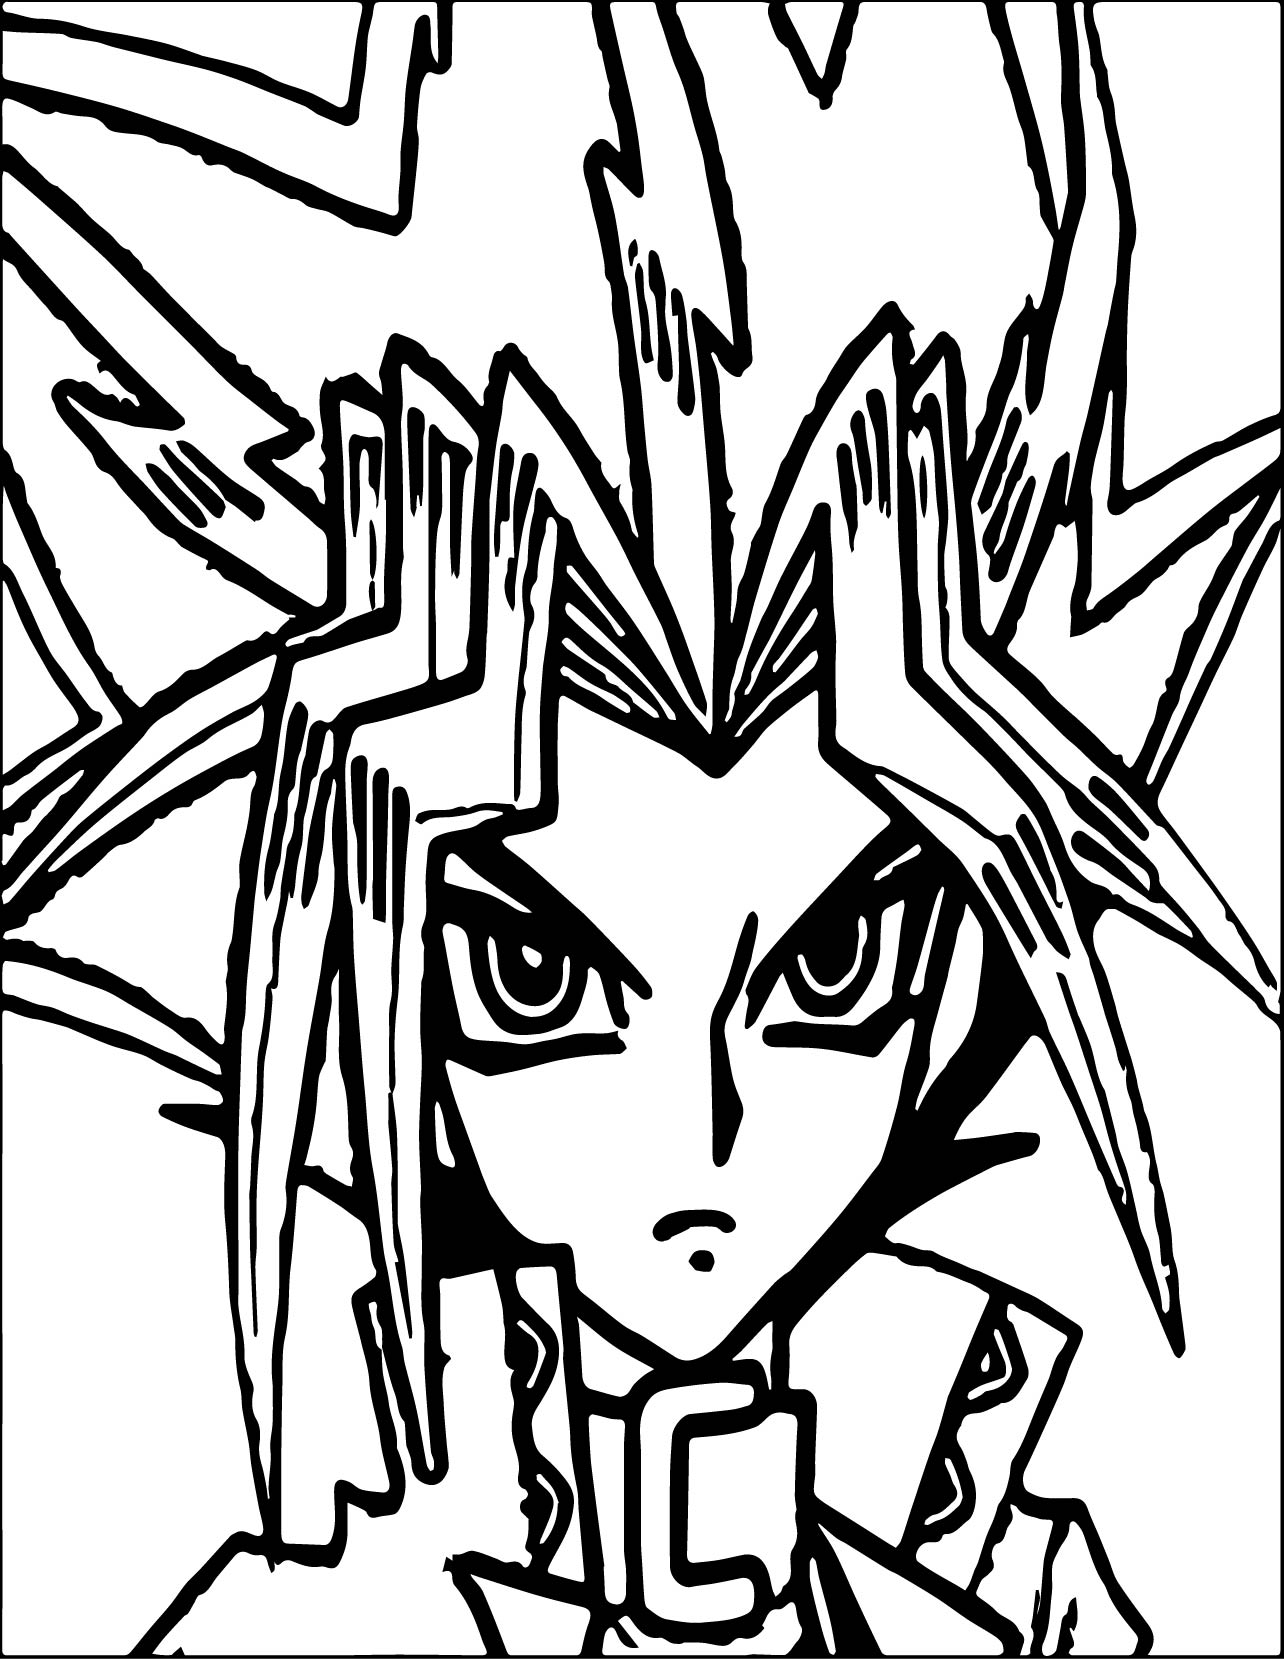 Coloring pages yugioh - Yugioh Coloring Pages